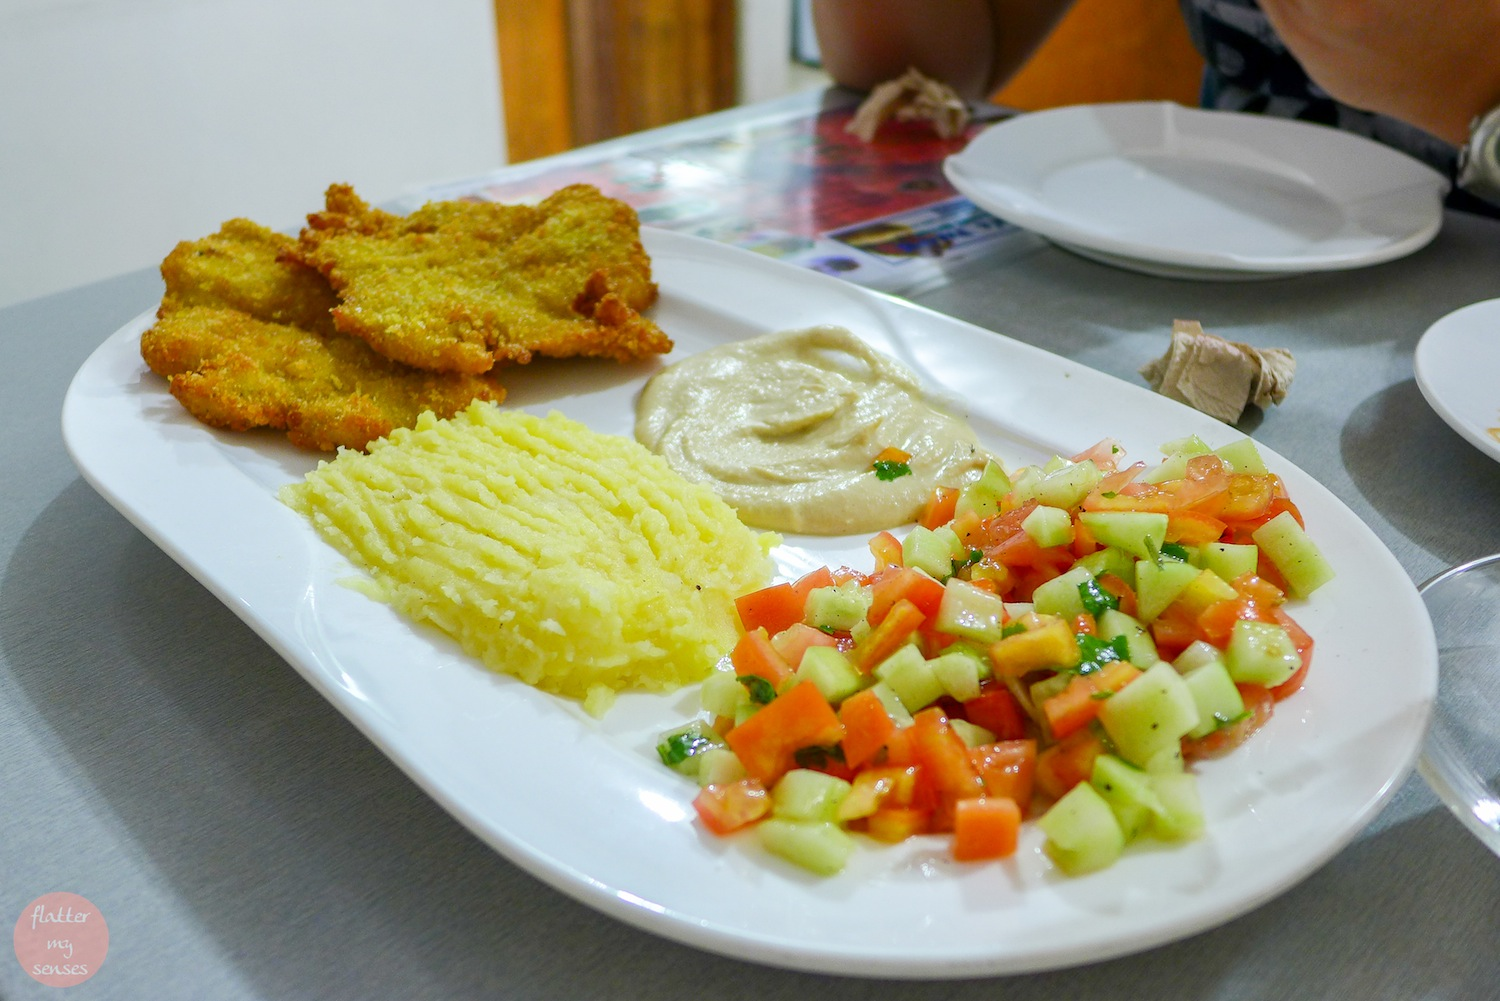 Shnitzel with mashed potato (Php 280). You can also get this meal with rice, fries or inside a pita.